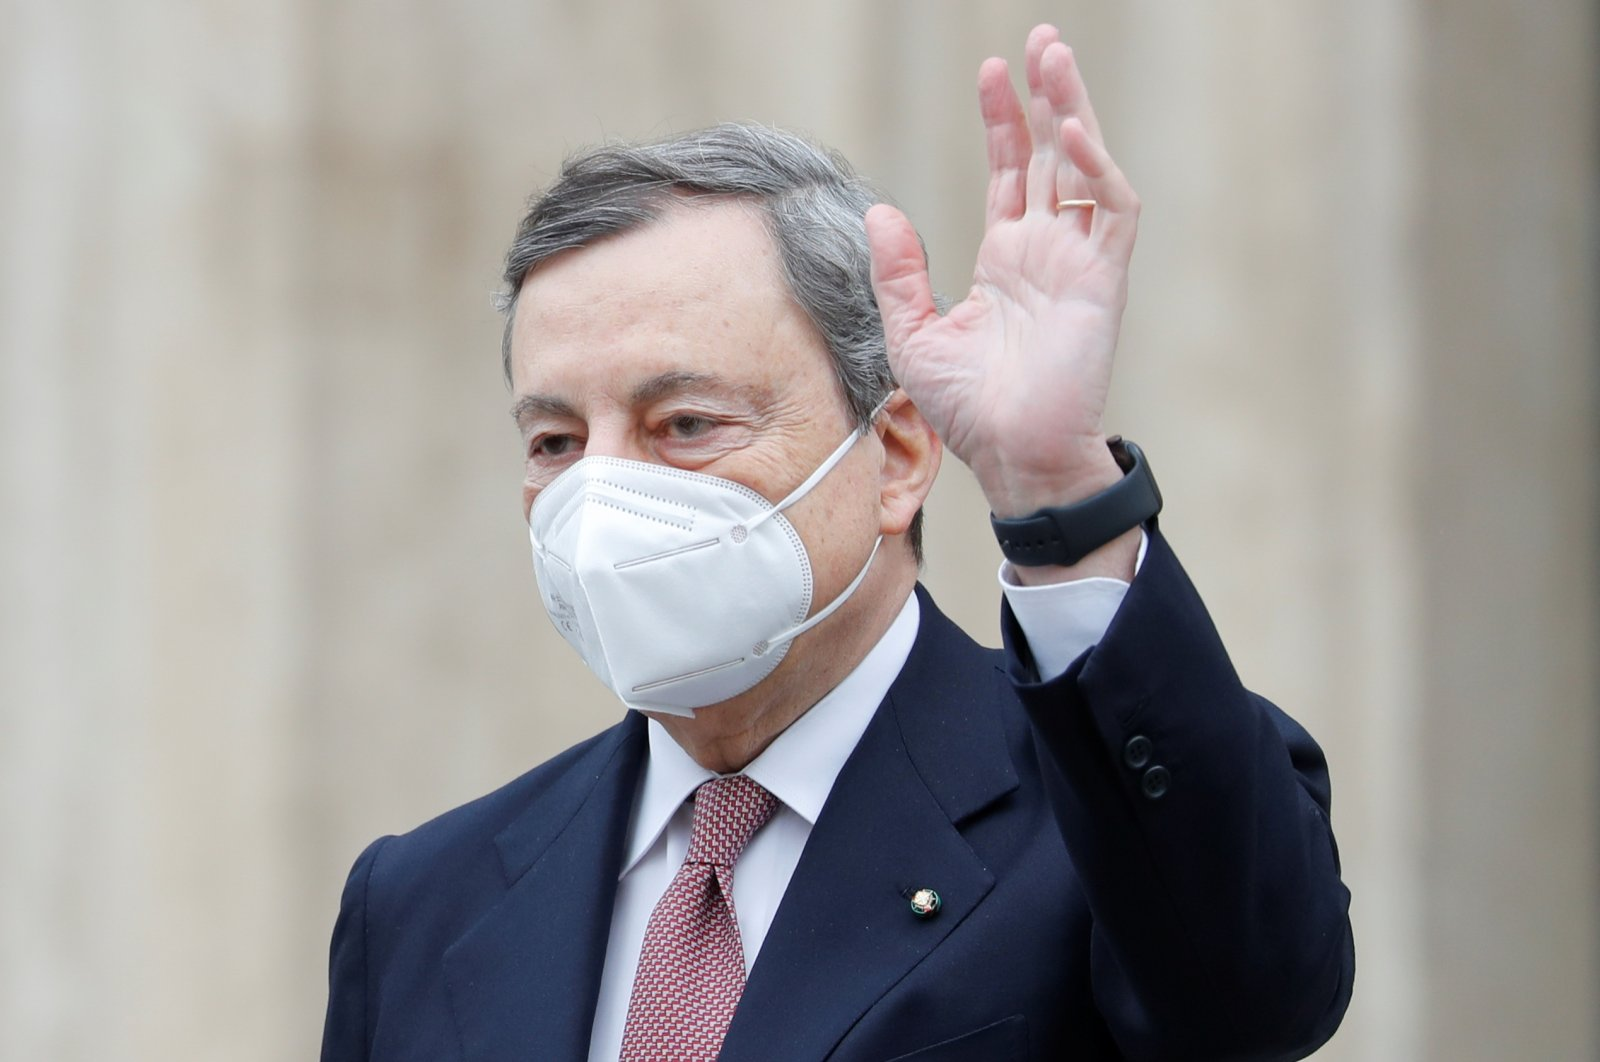 Newly installed Italian Prime Minister Mario Draghi leaves the lower house of parliament in Rome, Italy, Feb. 17, 2021. (Reuters Photo)